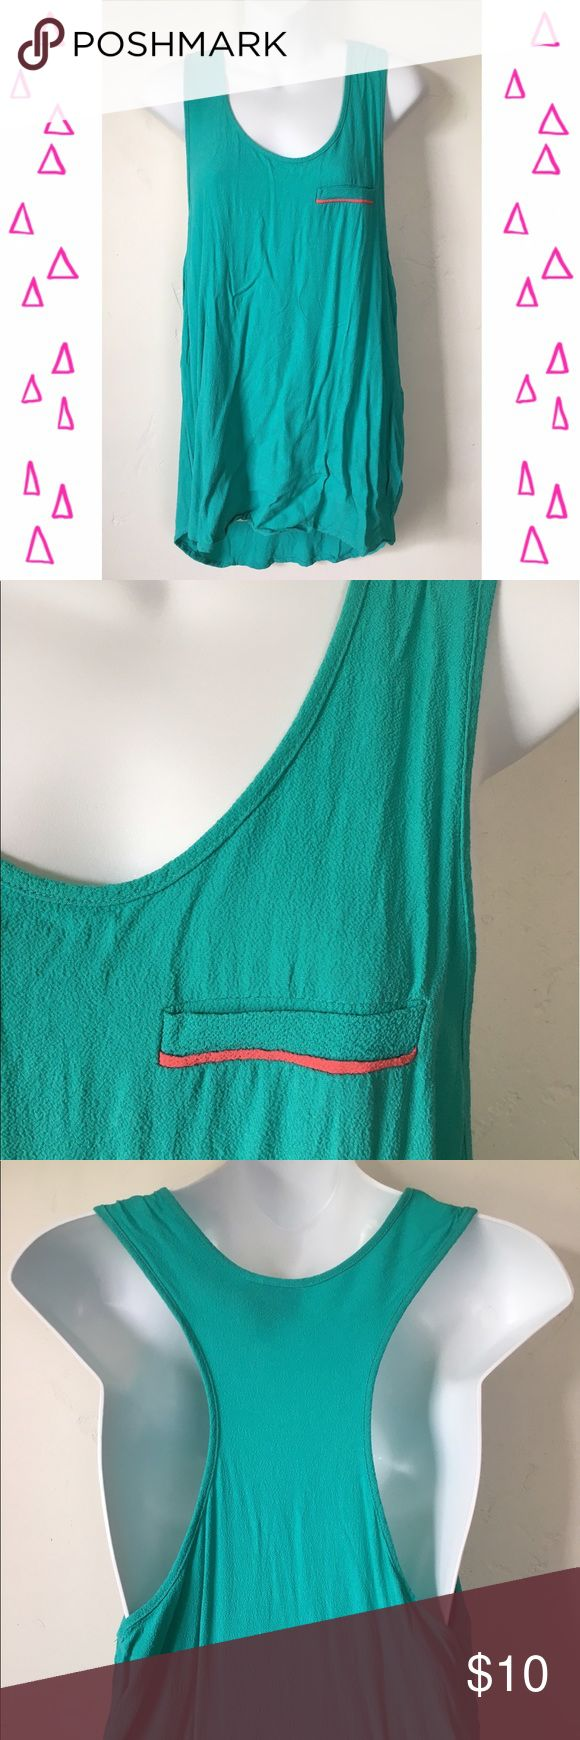 Prabel Gurung for Target Racerback Tank Top Teal racerback tee. Pocket with pink detailing. Flowy & comfortable. On the long side. Front a bit shorter than back. Prabal Gurung for Target Tops Tank Tops